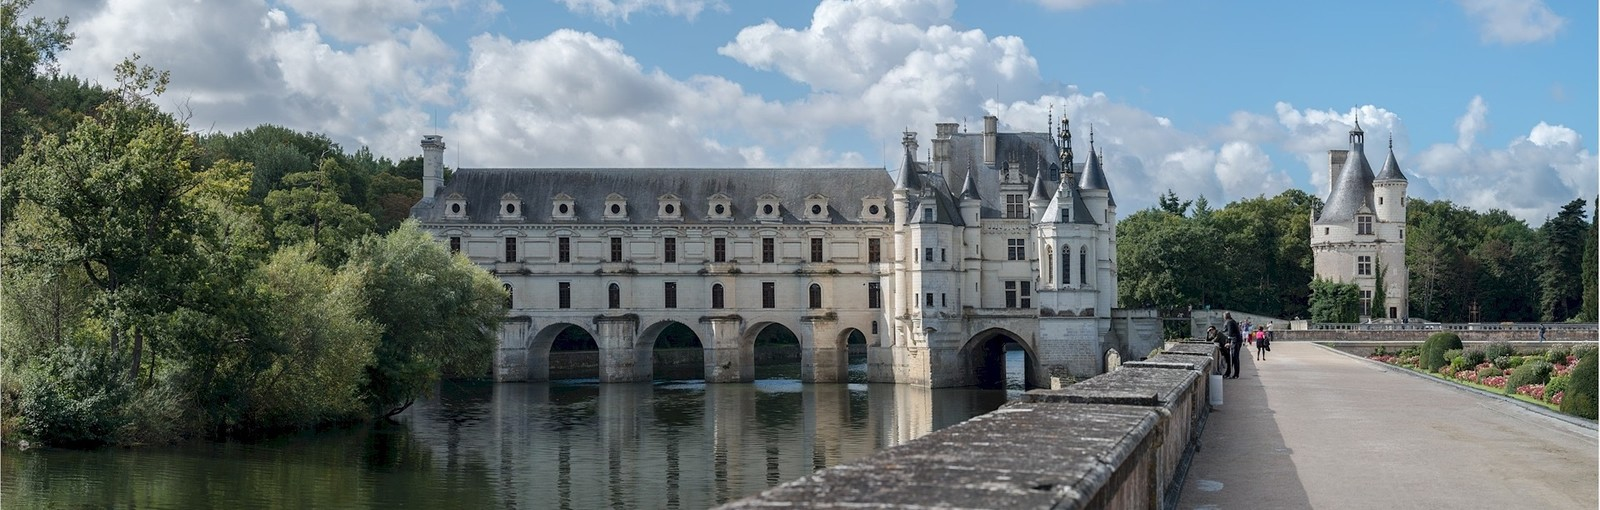 Tours Castles of the Loire - Normandy - Multi-regional - Multiday tours from Paris